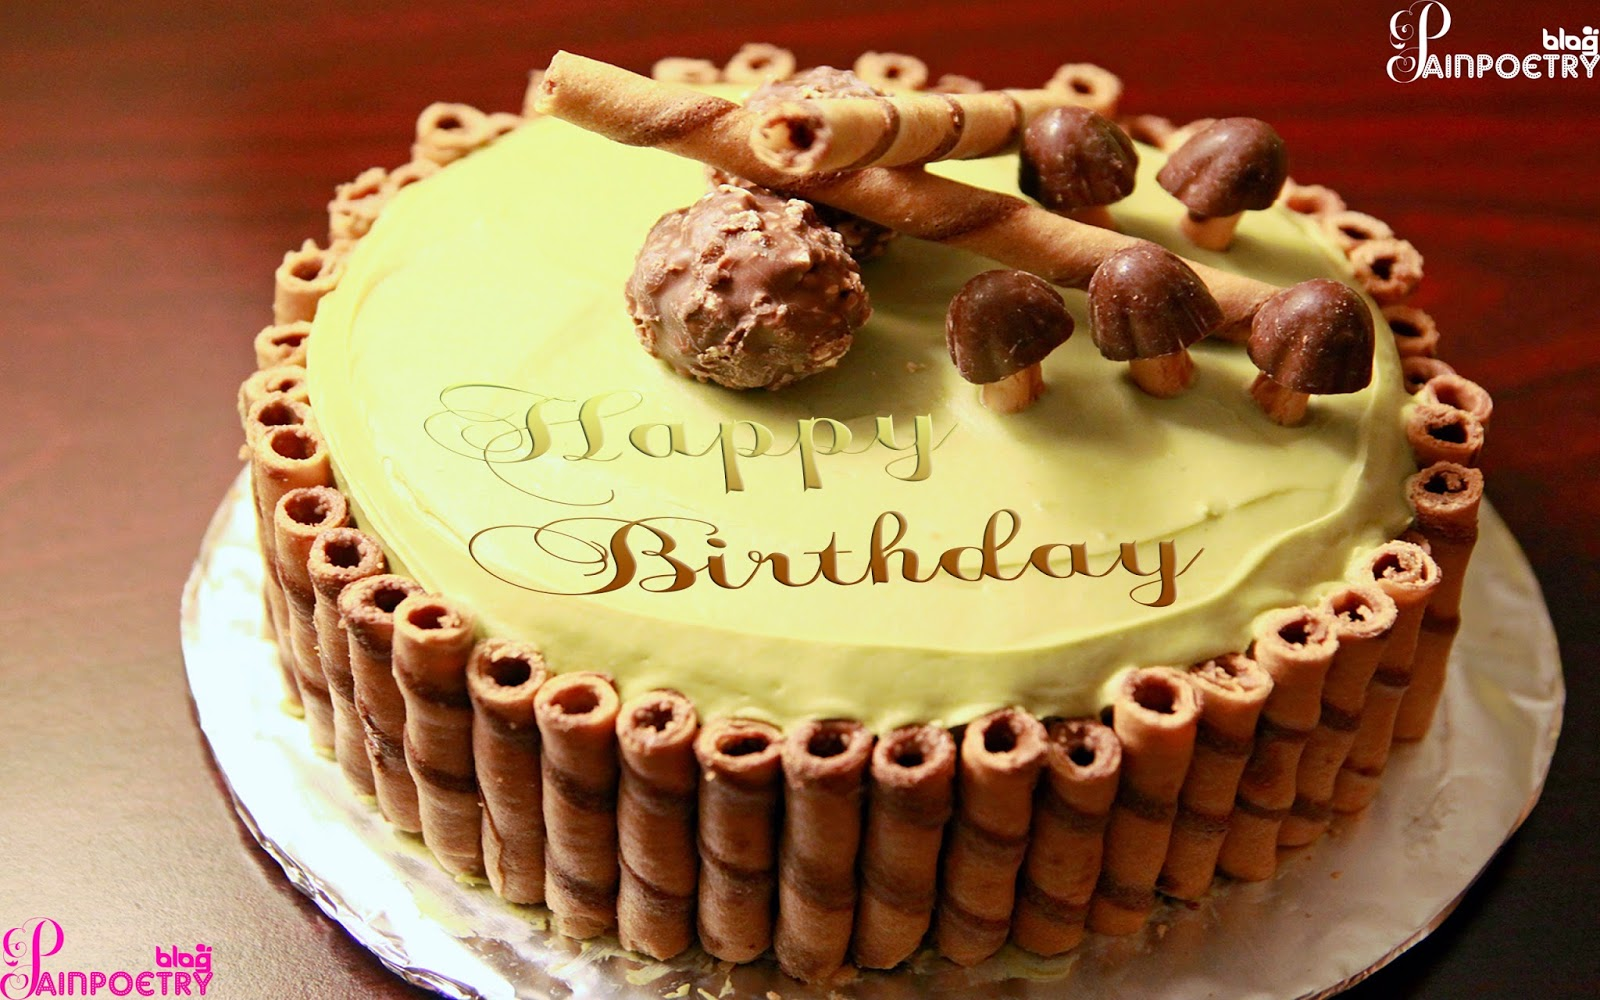 Birthday Cake Images Messages : Happy Birthday Wishes Wallpapers With Cakes Images And ...